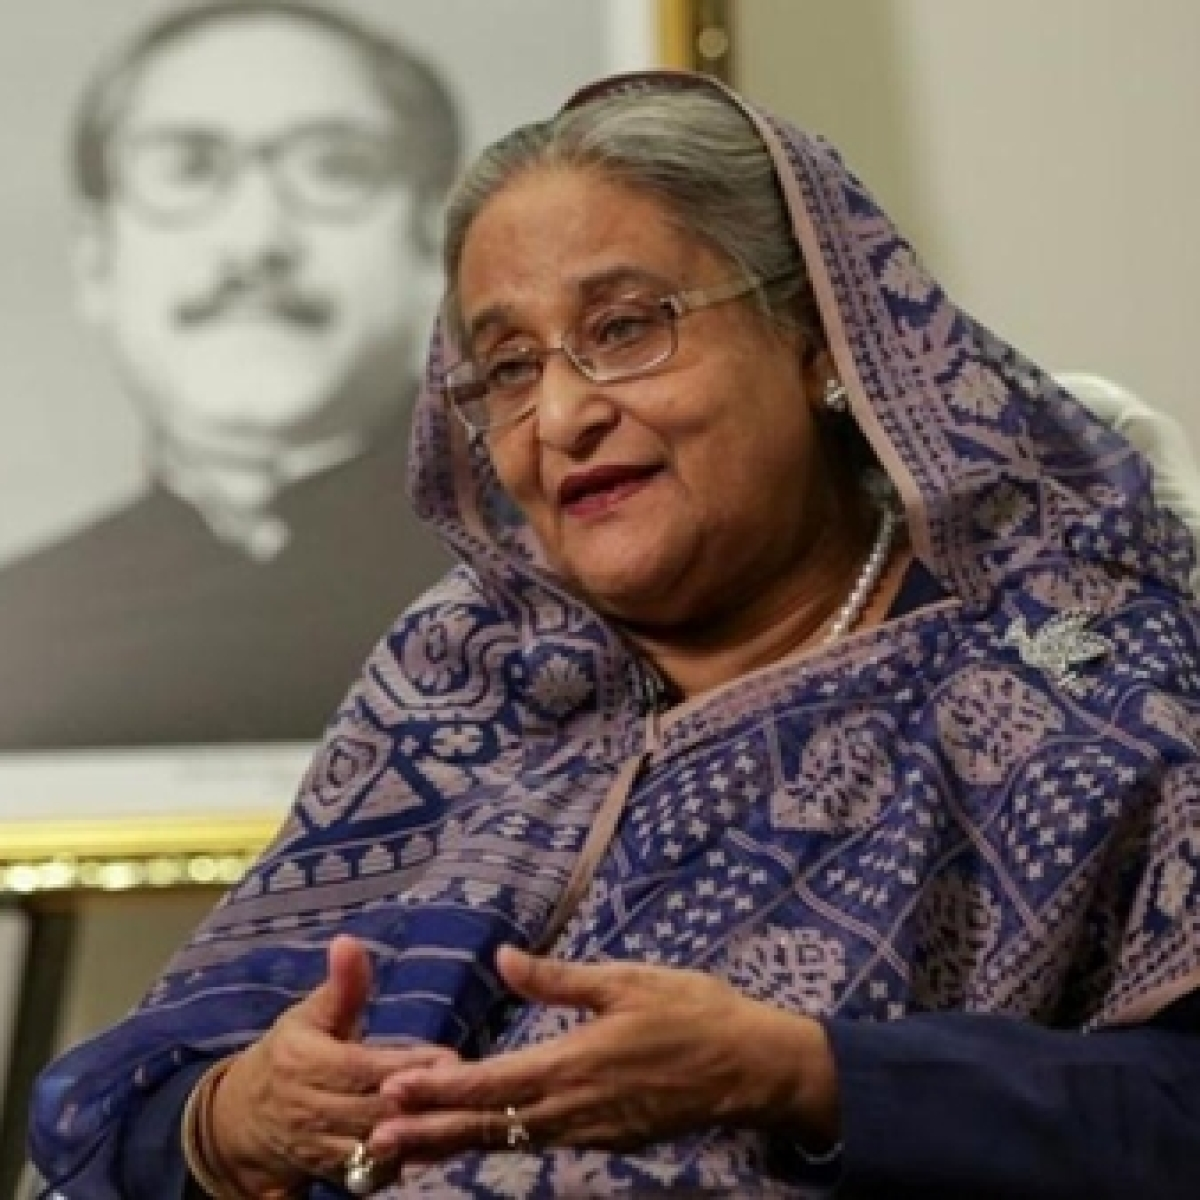 Will never allow division in the name of religion: Bangladesh PM Sheikh Hasina